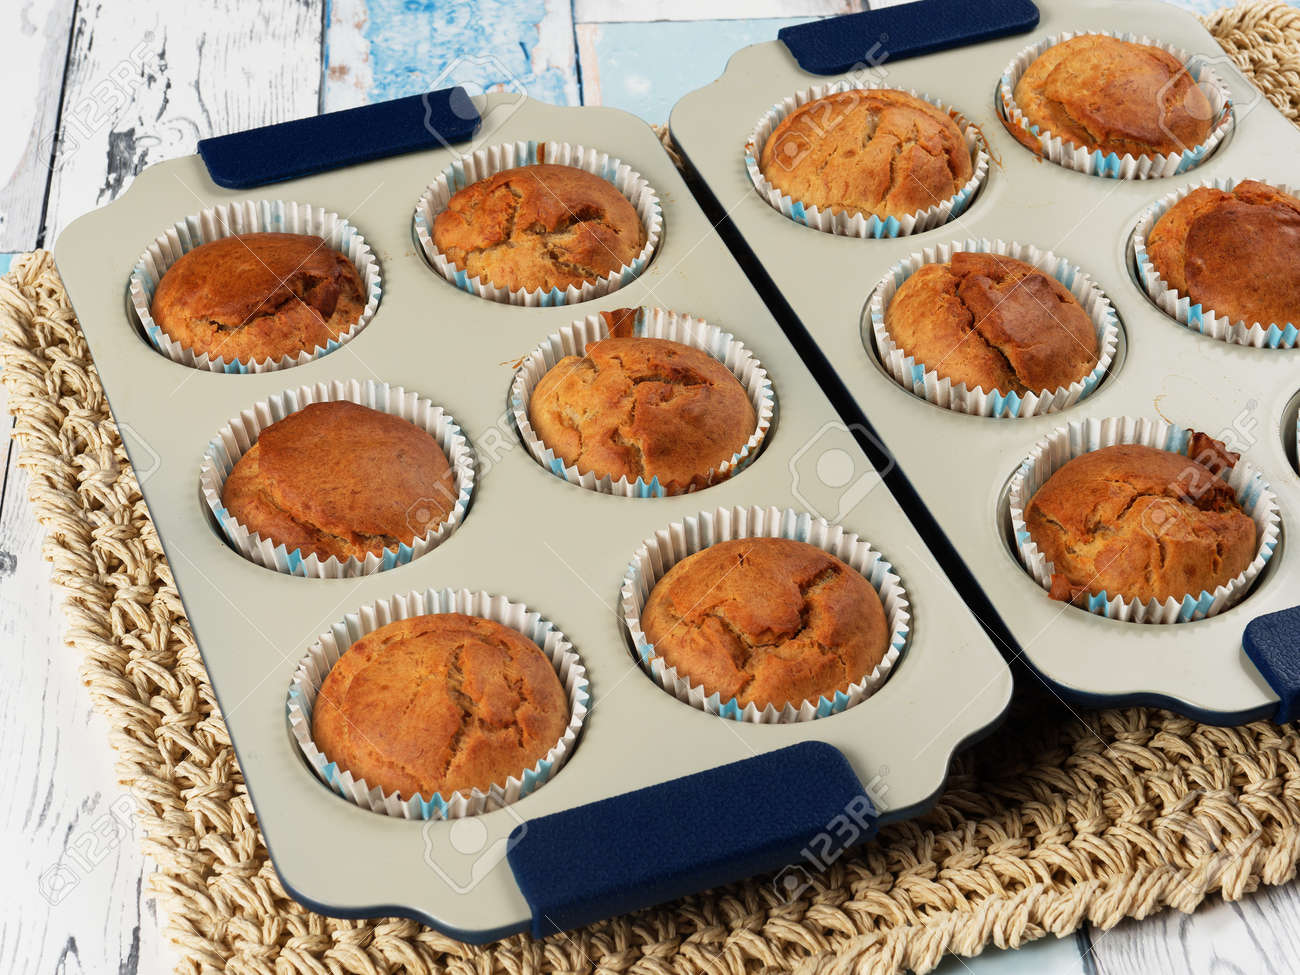 Homemade banana muffins in trays. No sugar added. Toddler food. - 169668303